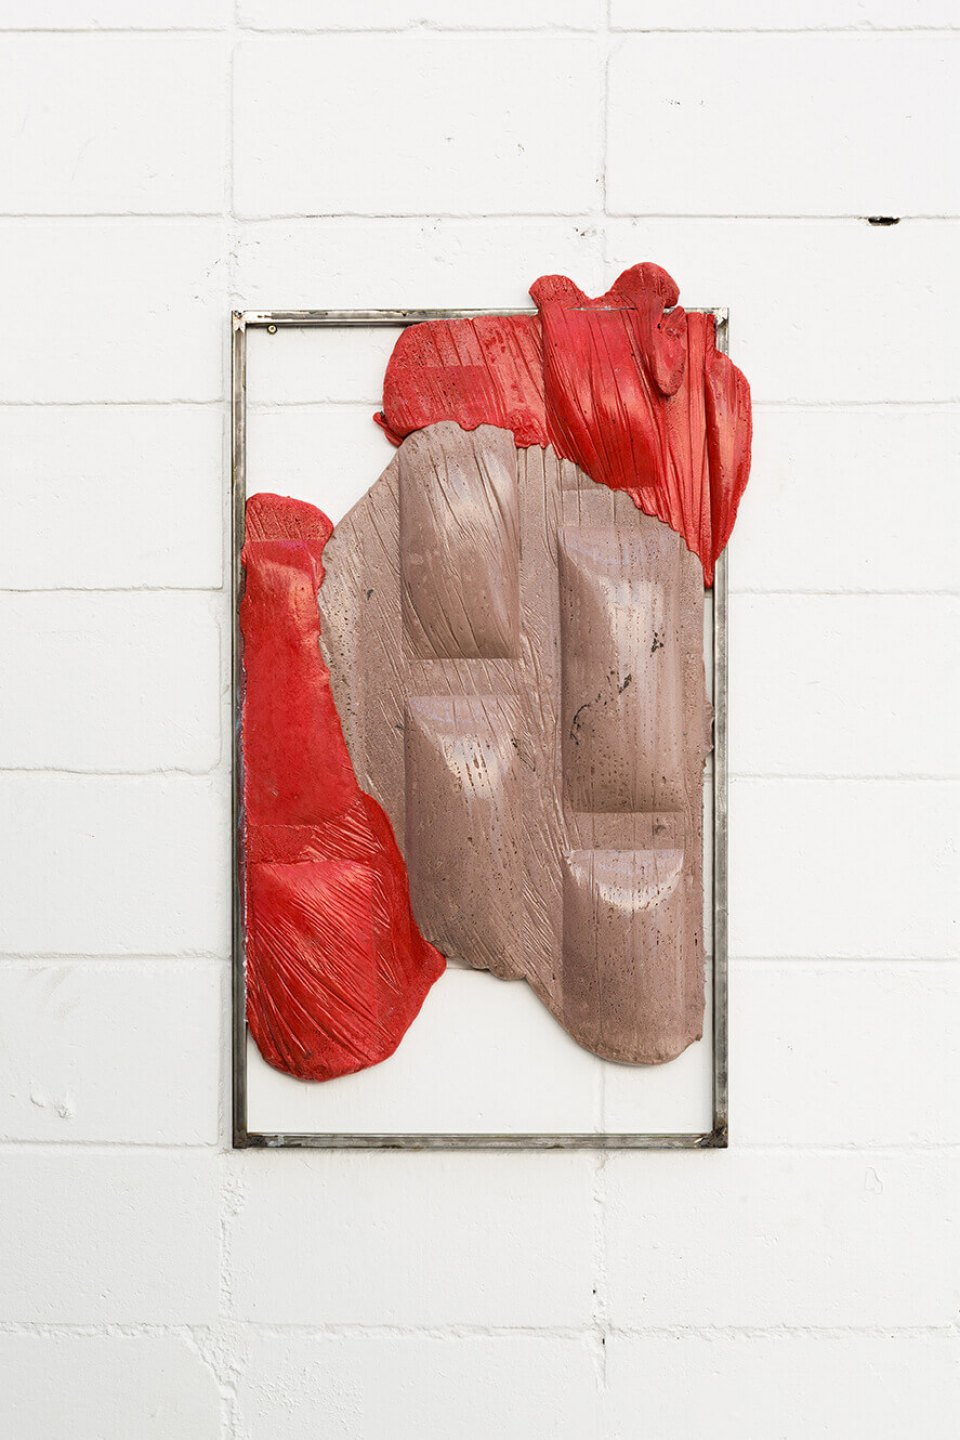 Neïl Beloufa, <em>90º degrees, sports car bar, from Secured wall series</em>, 2014, extensive foam, pigment and metal, 95 × 53 × 6 cm - Mendes Wood DM